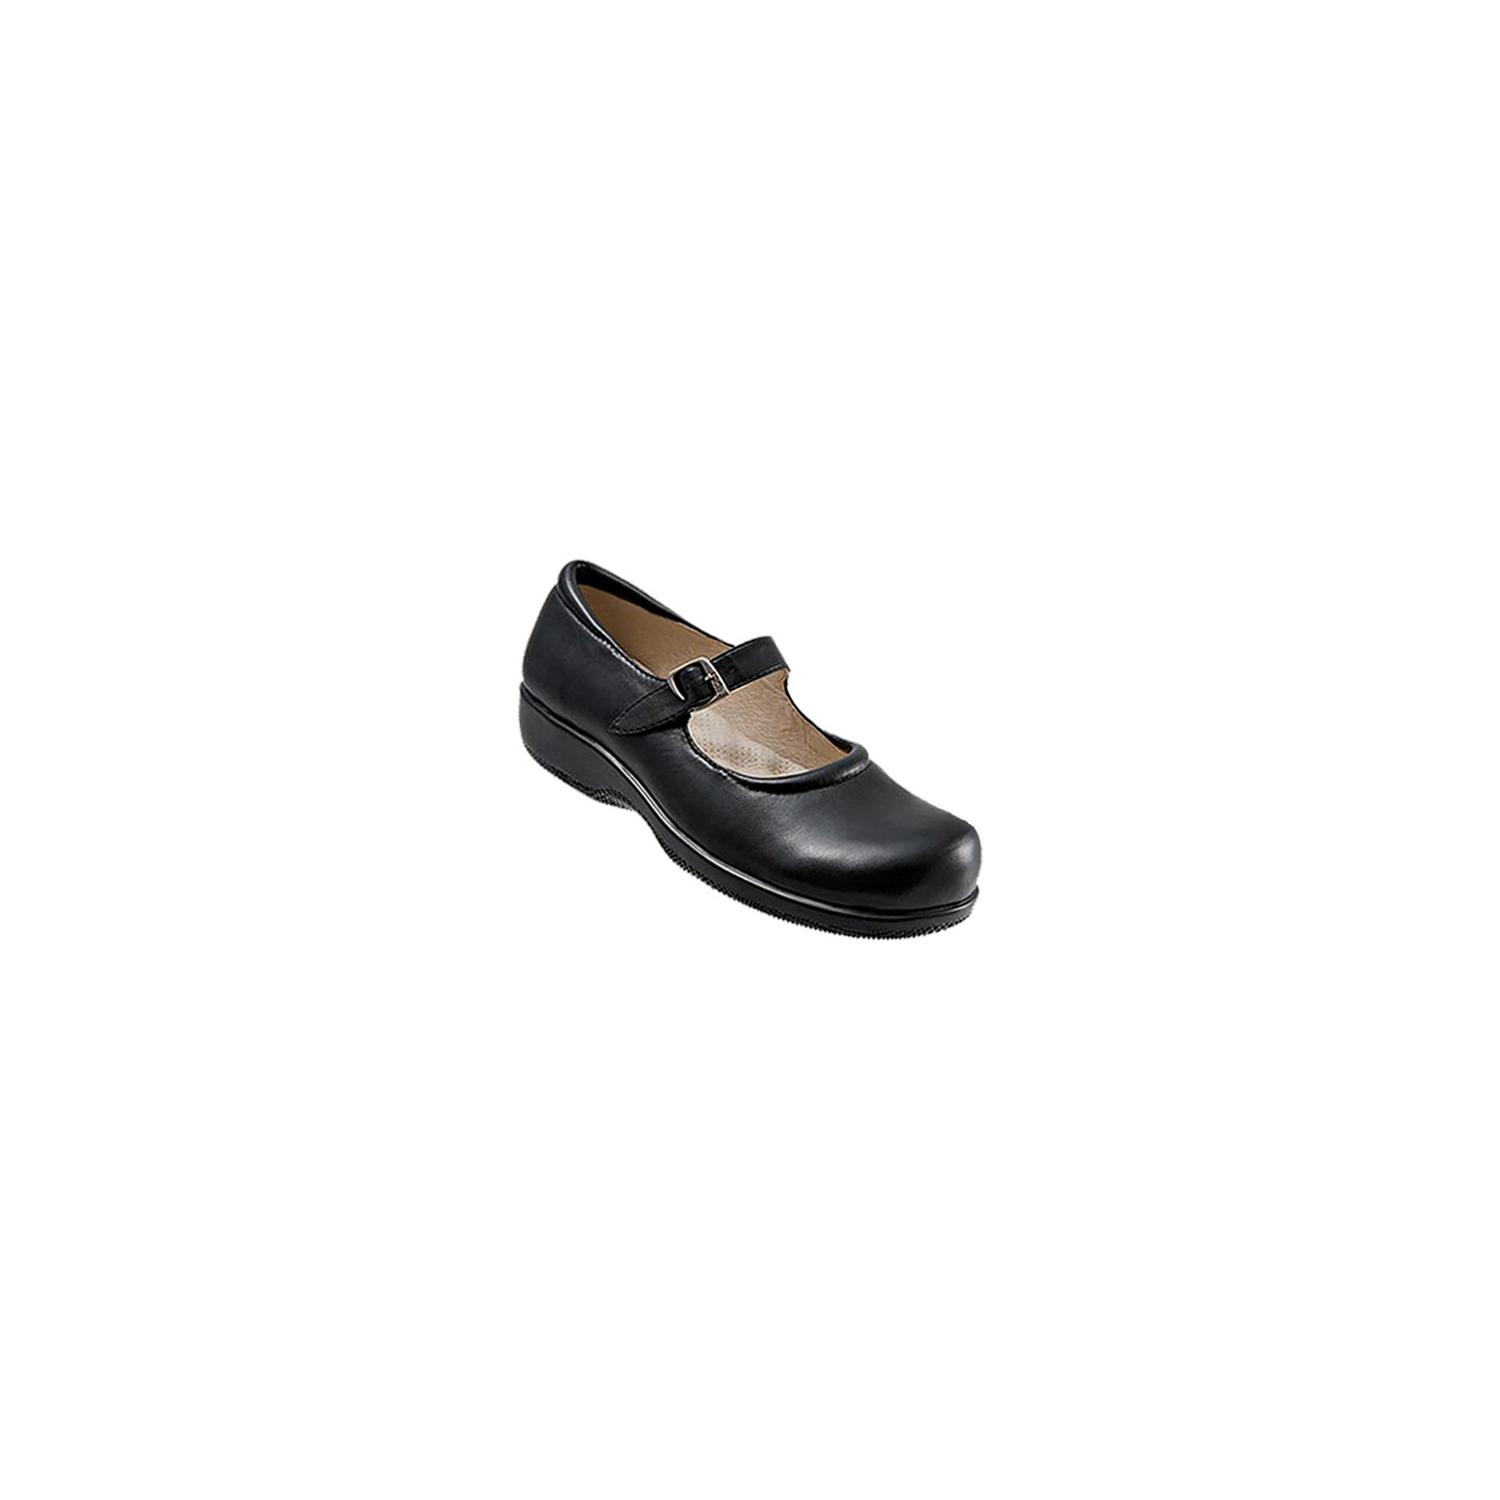 SoftWalk Women's Jupiter by SoftWalk